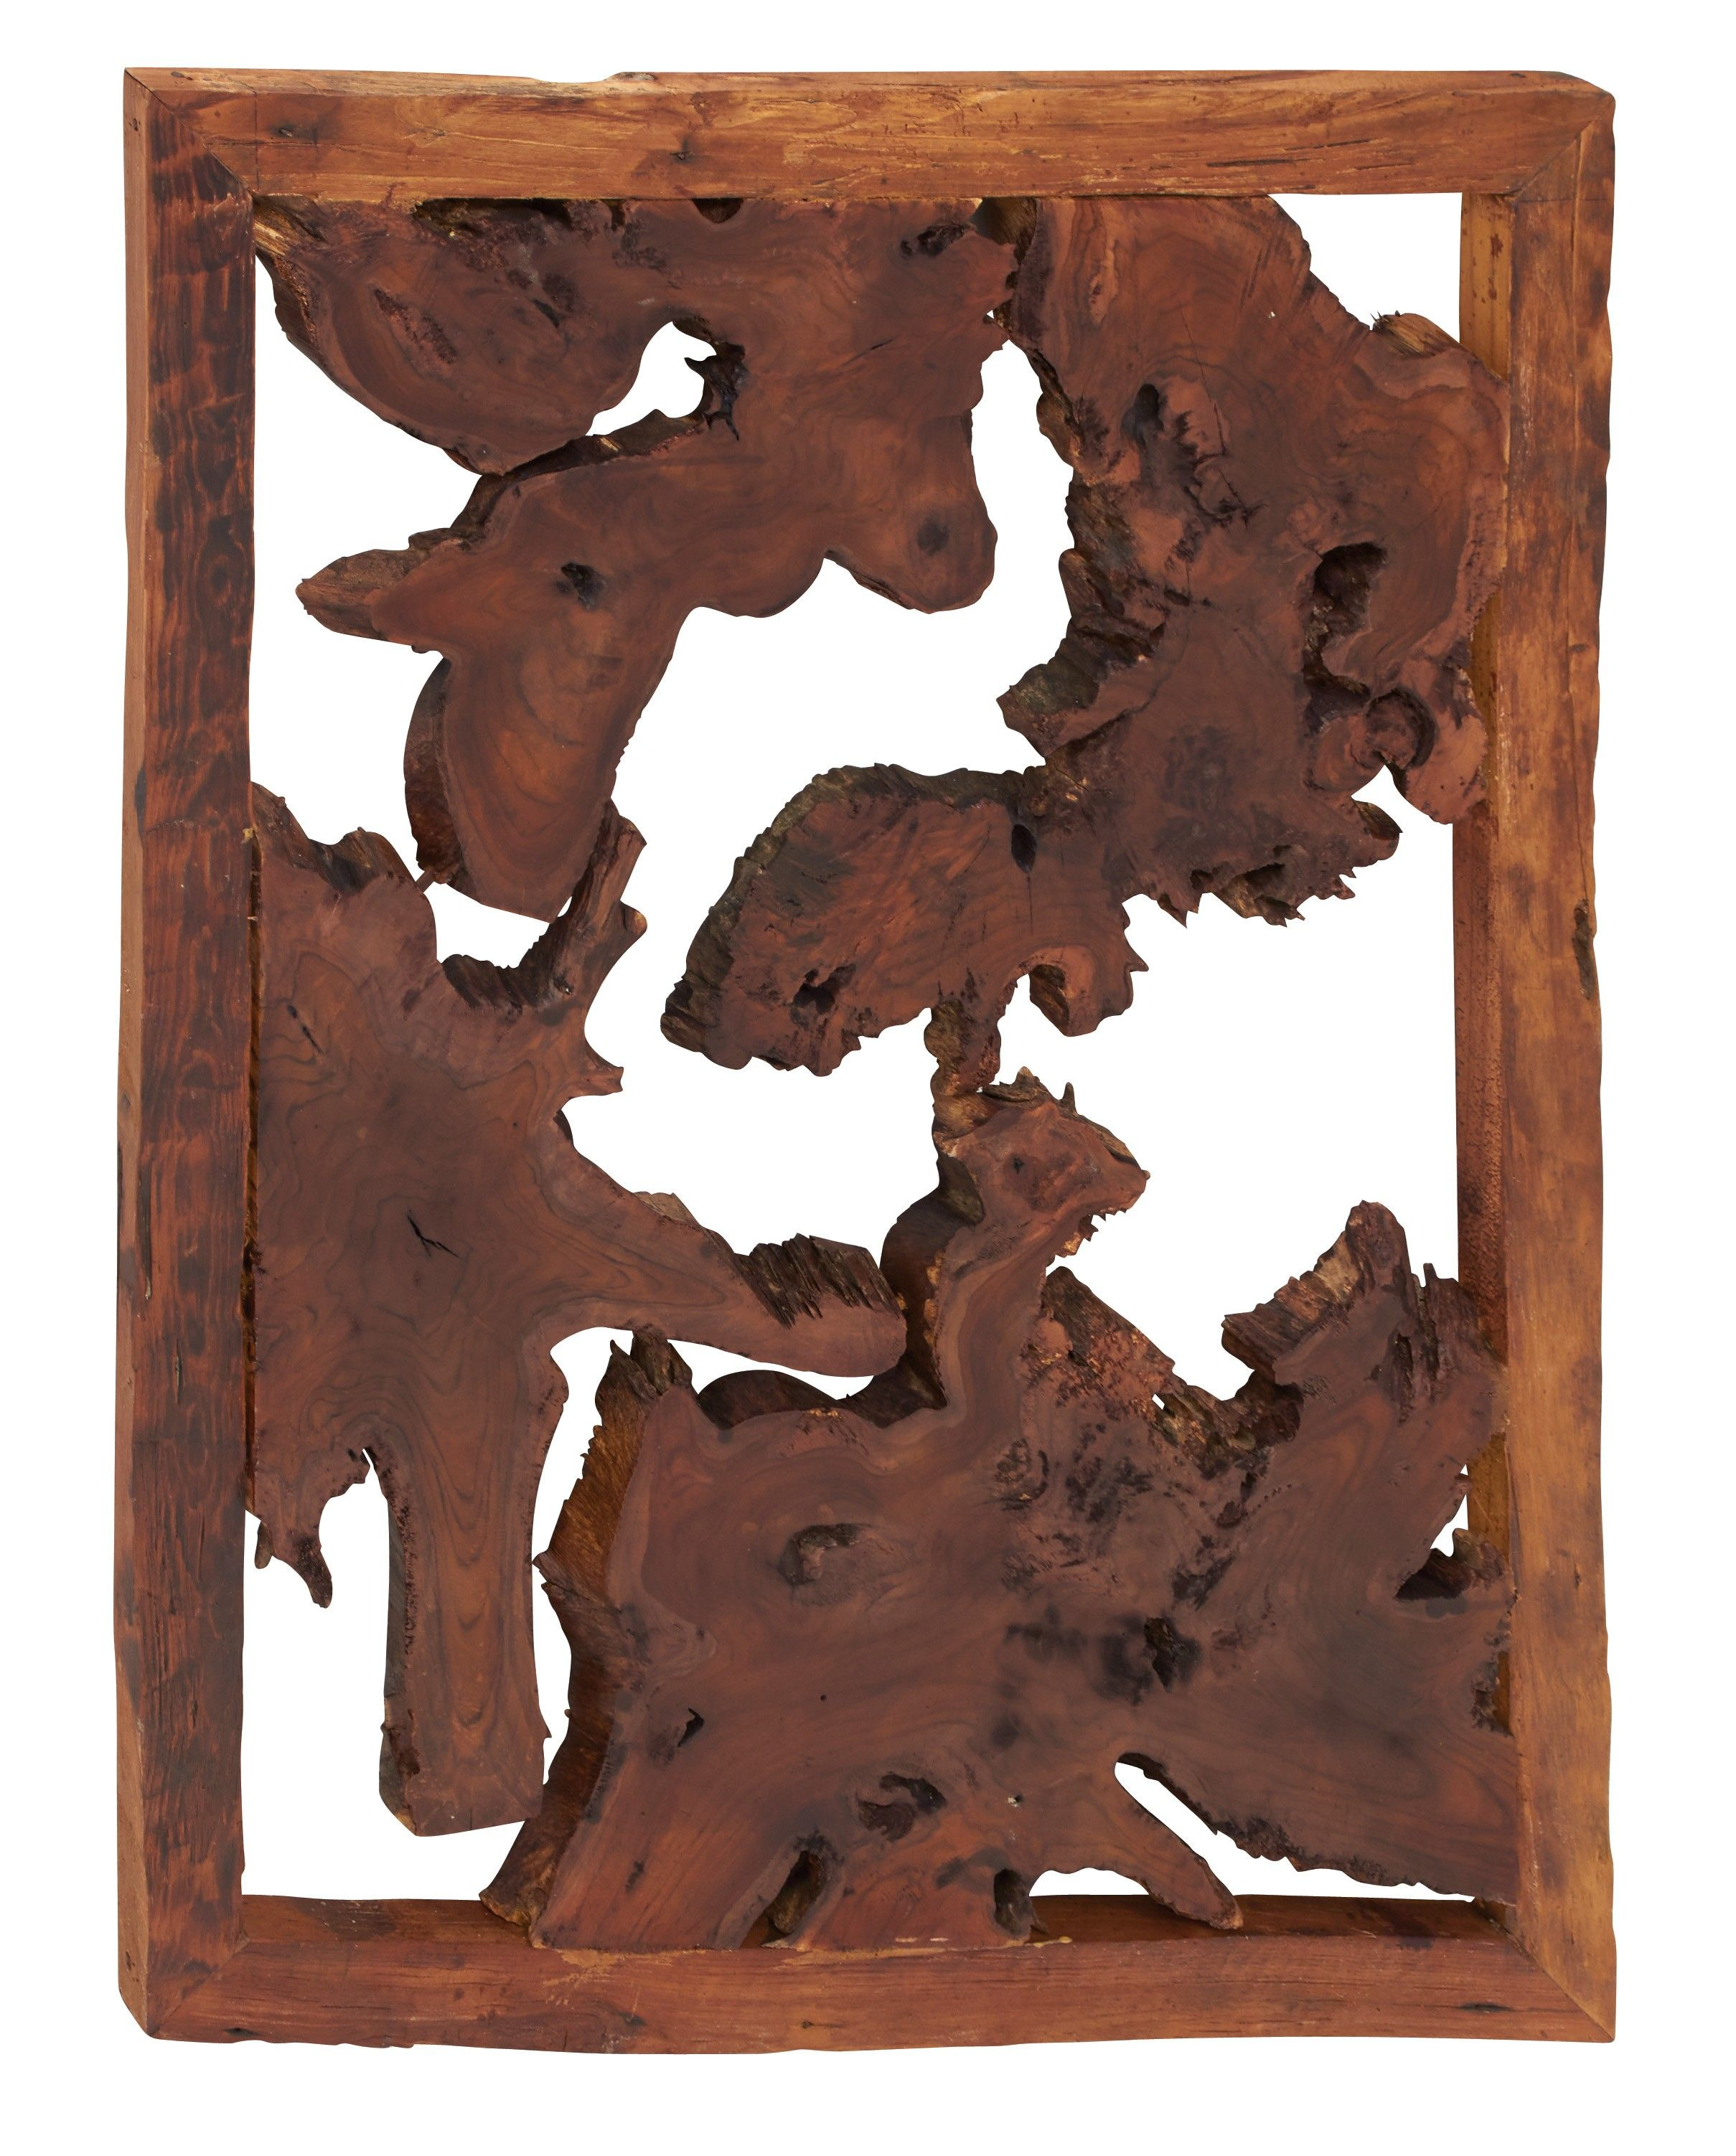 Contemporary and modern style wood teak wall plaque home d